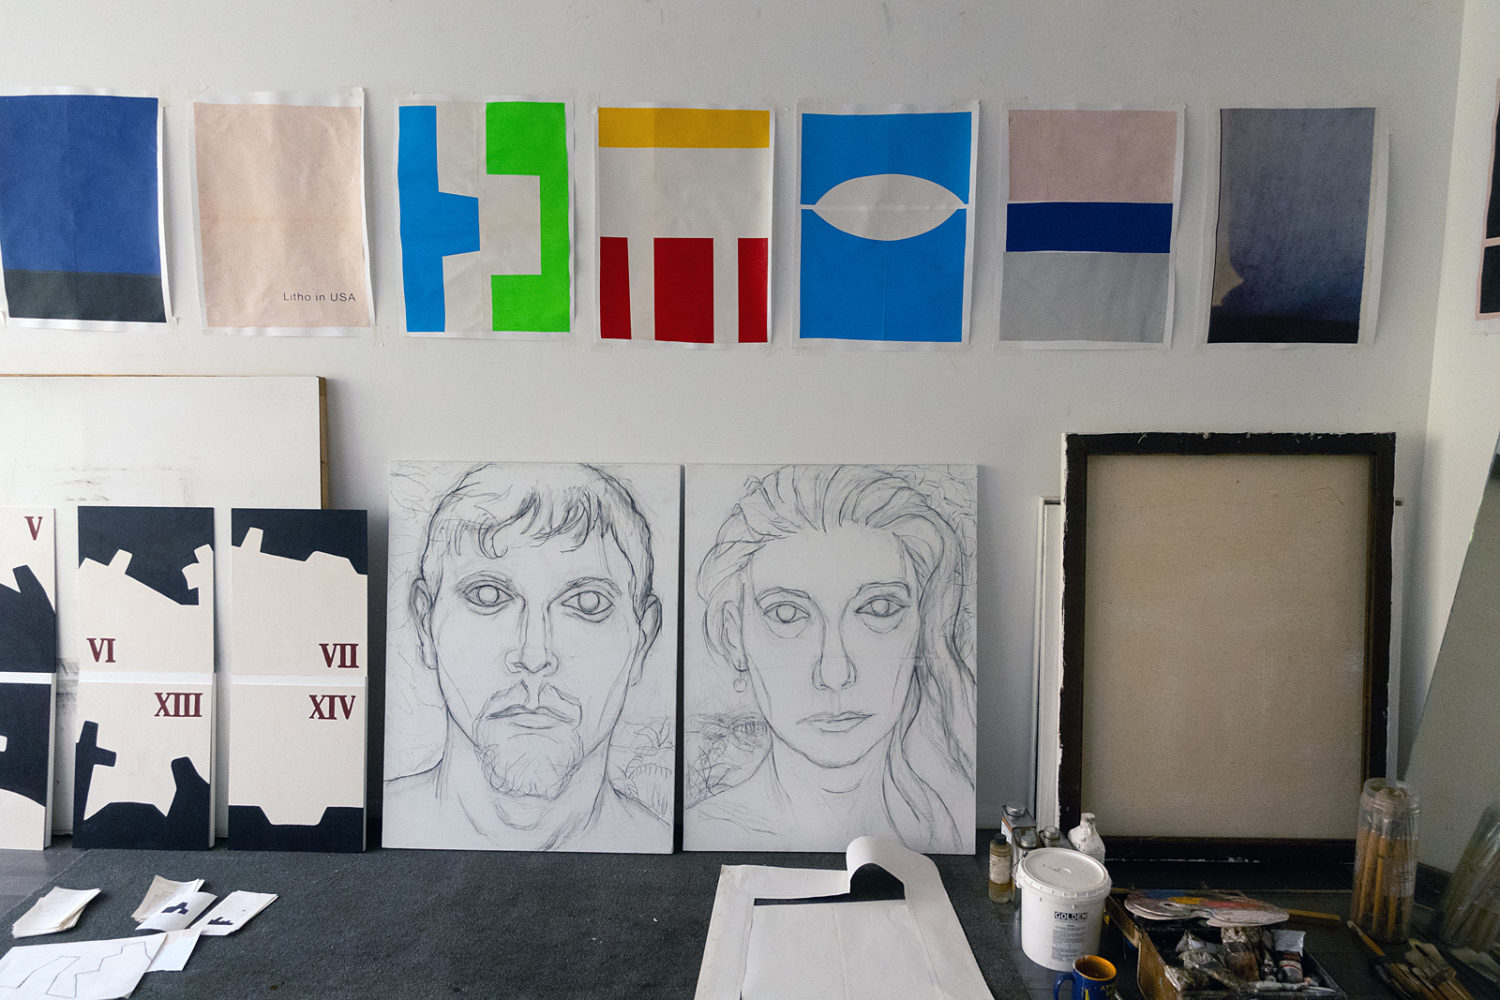 Studio with Litho Collages on wall